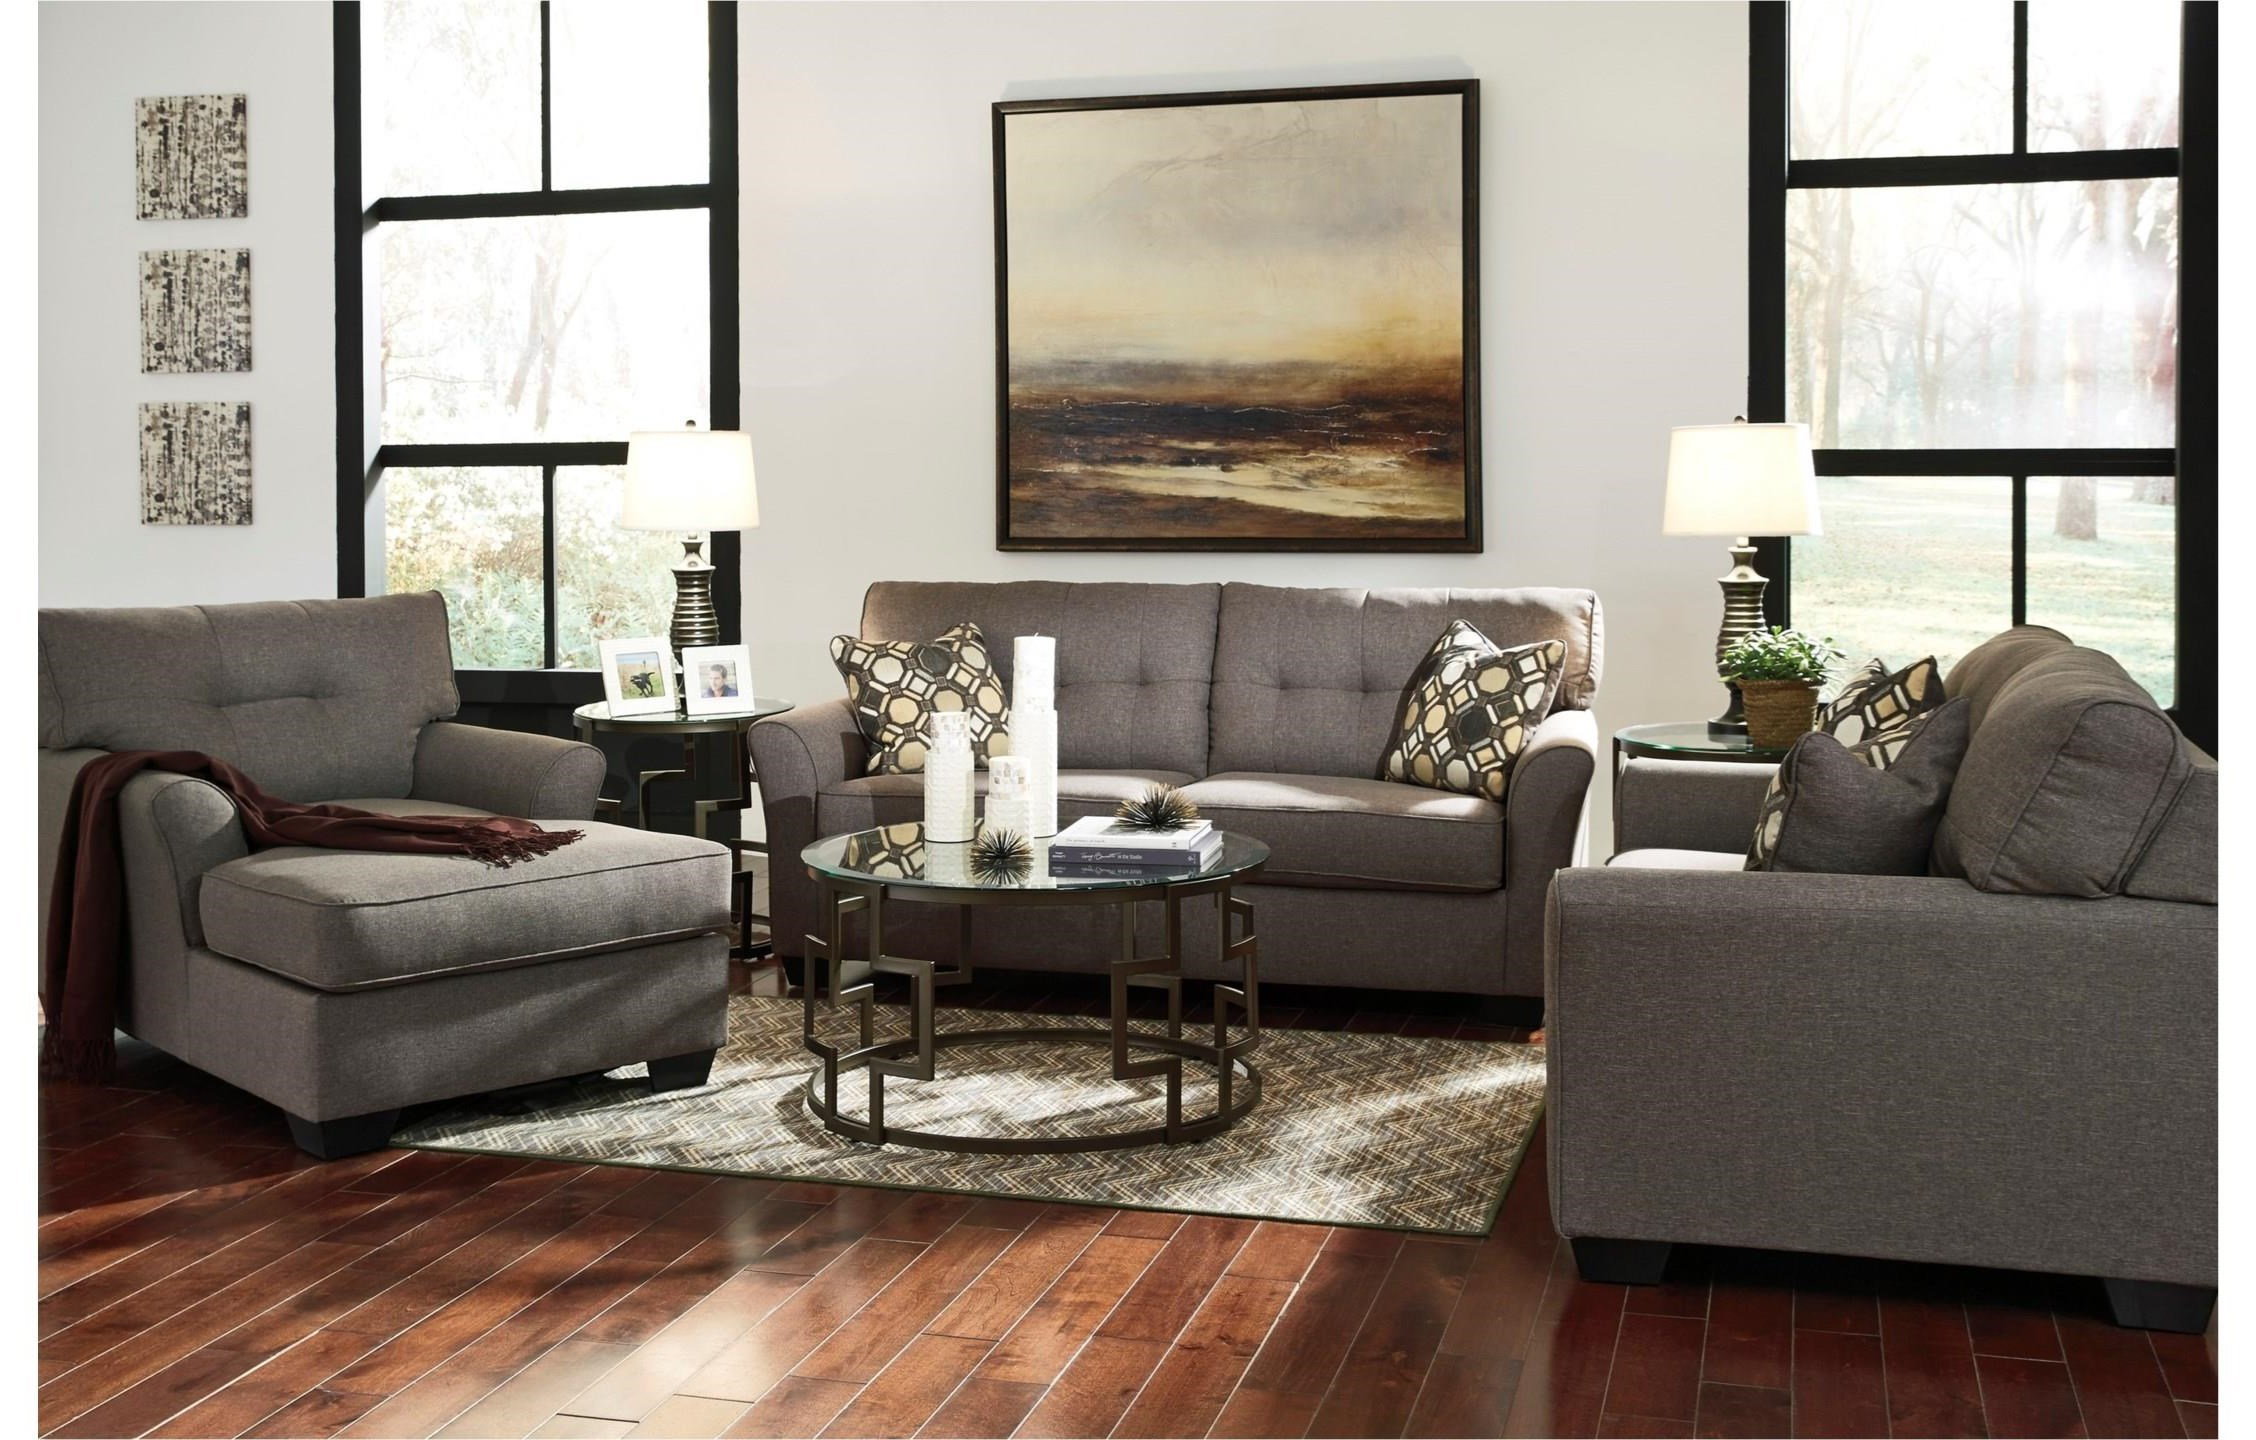 Tibbee 8PC LIVING ROOM by Signature Design by Ashley at Value City Furniture